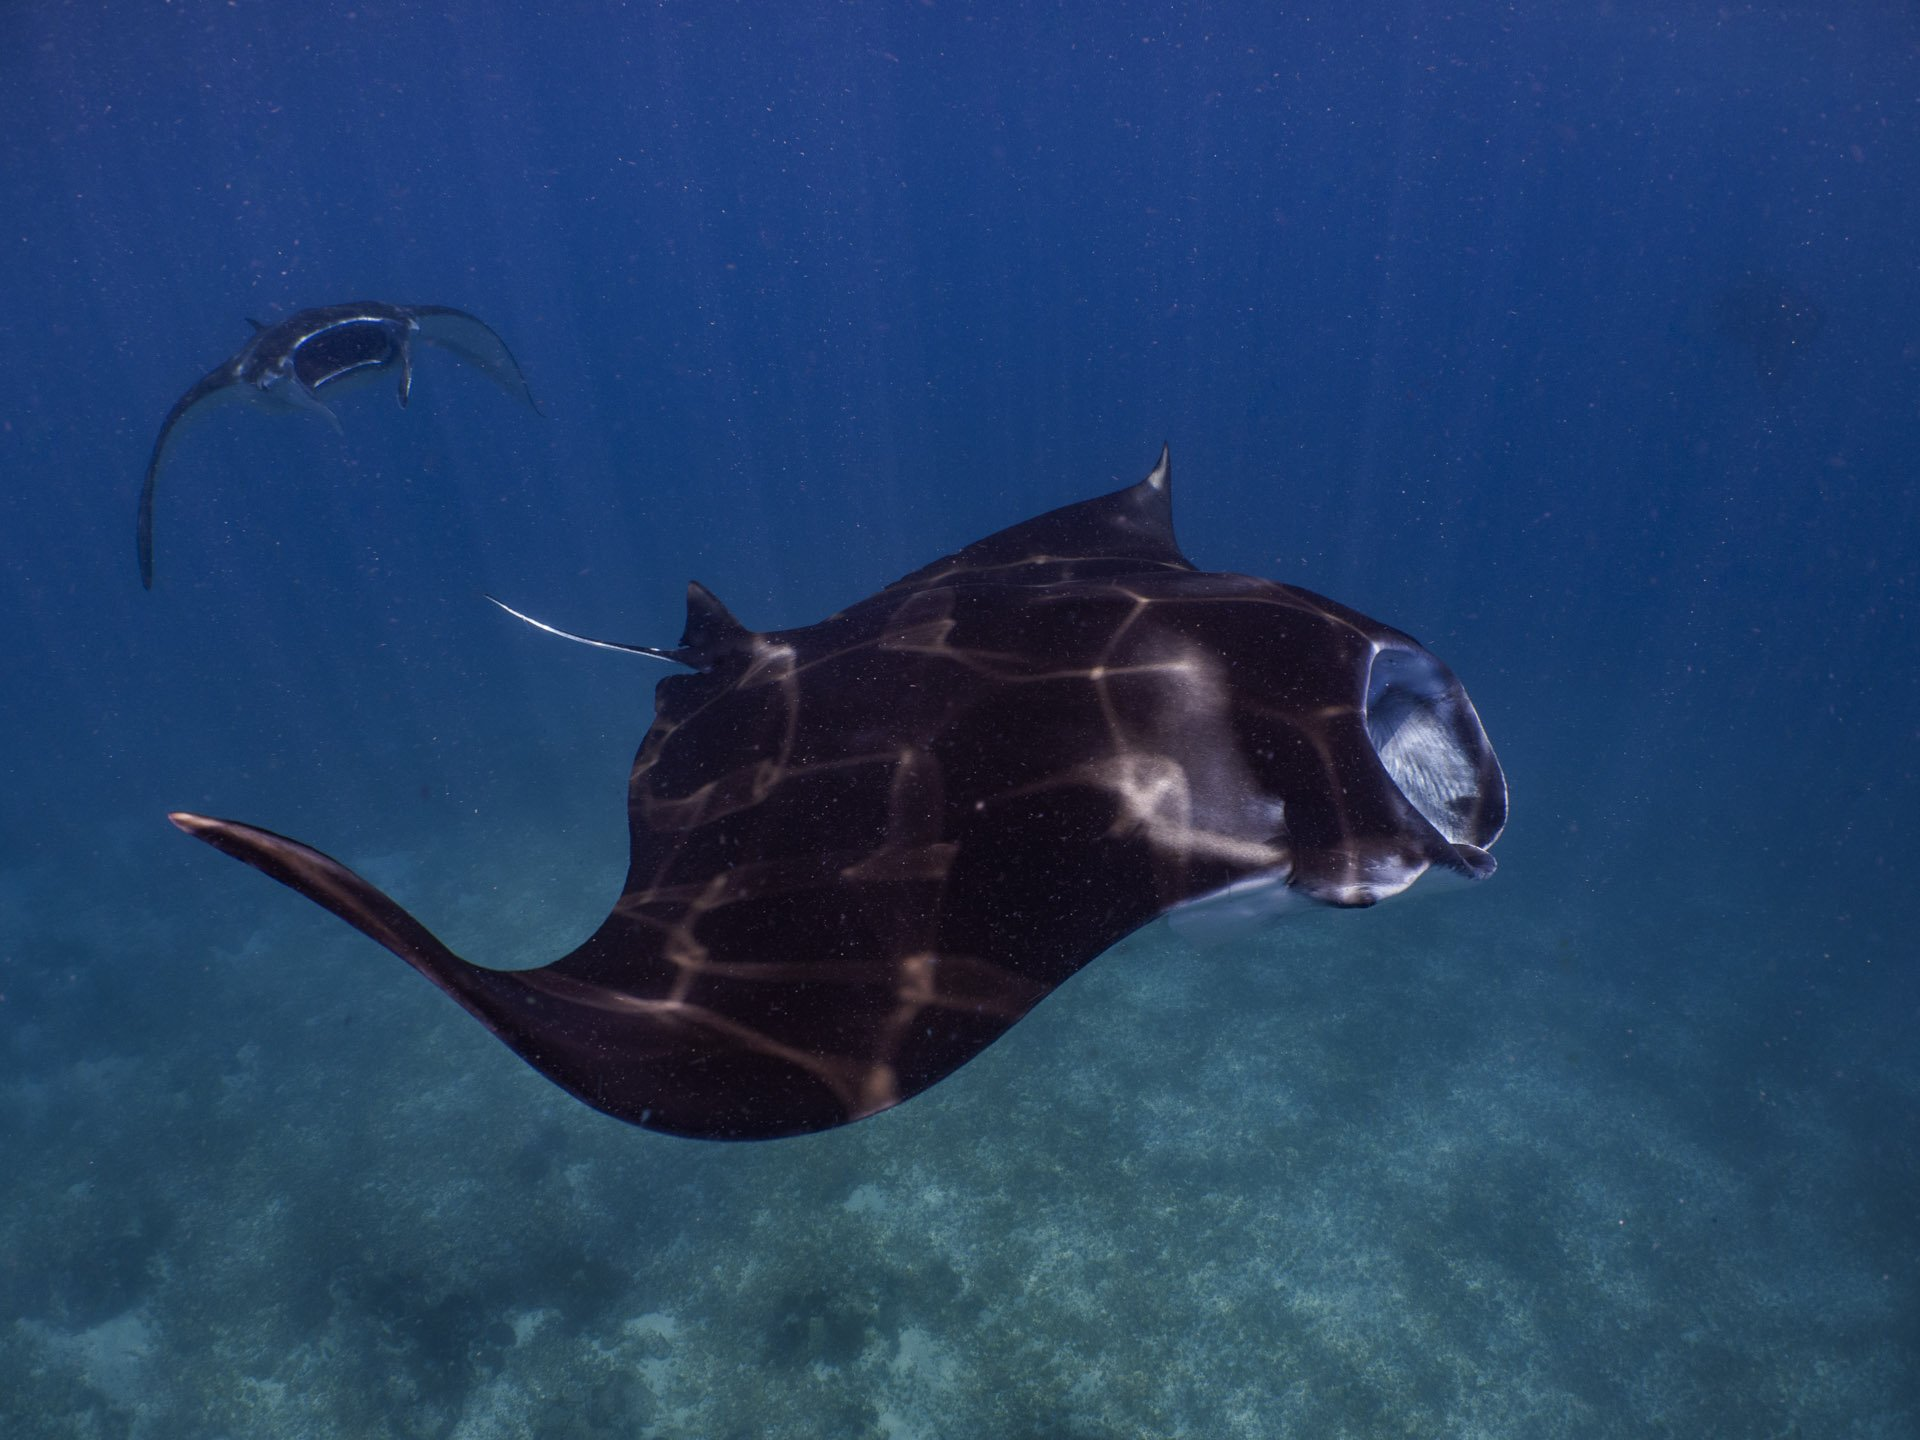 Two manta rays swimming